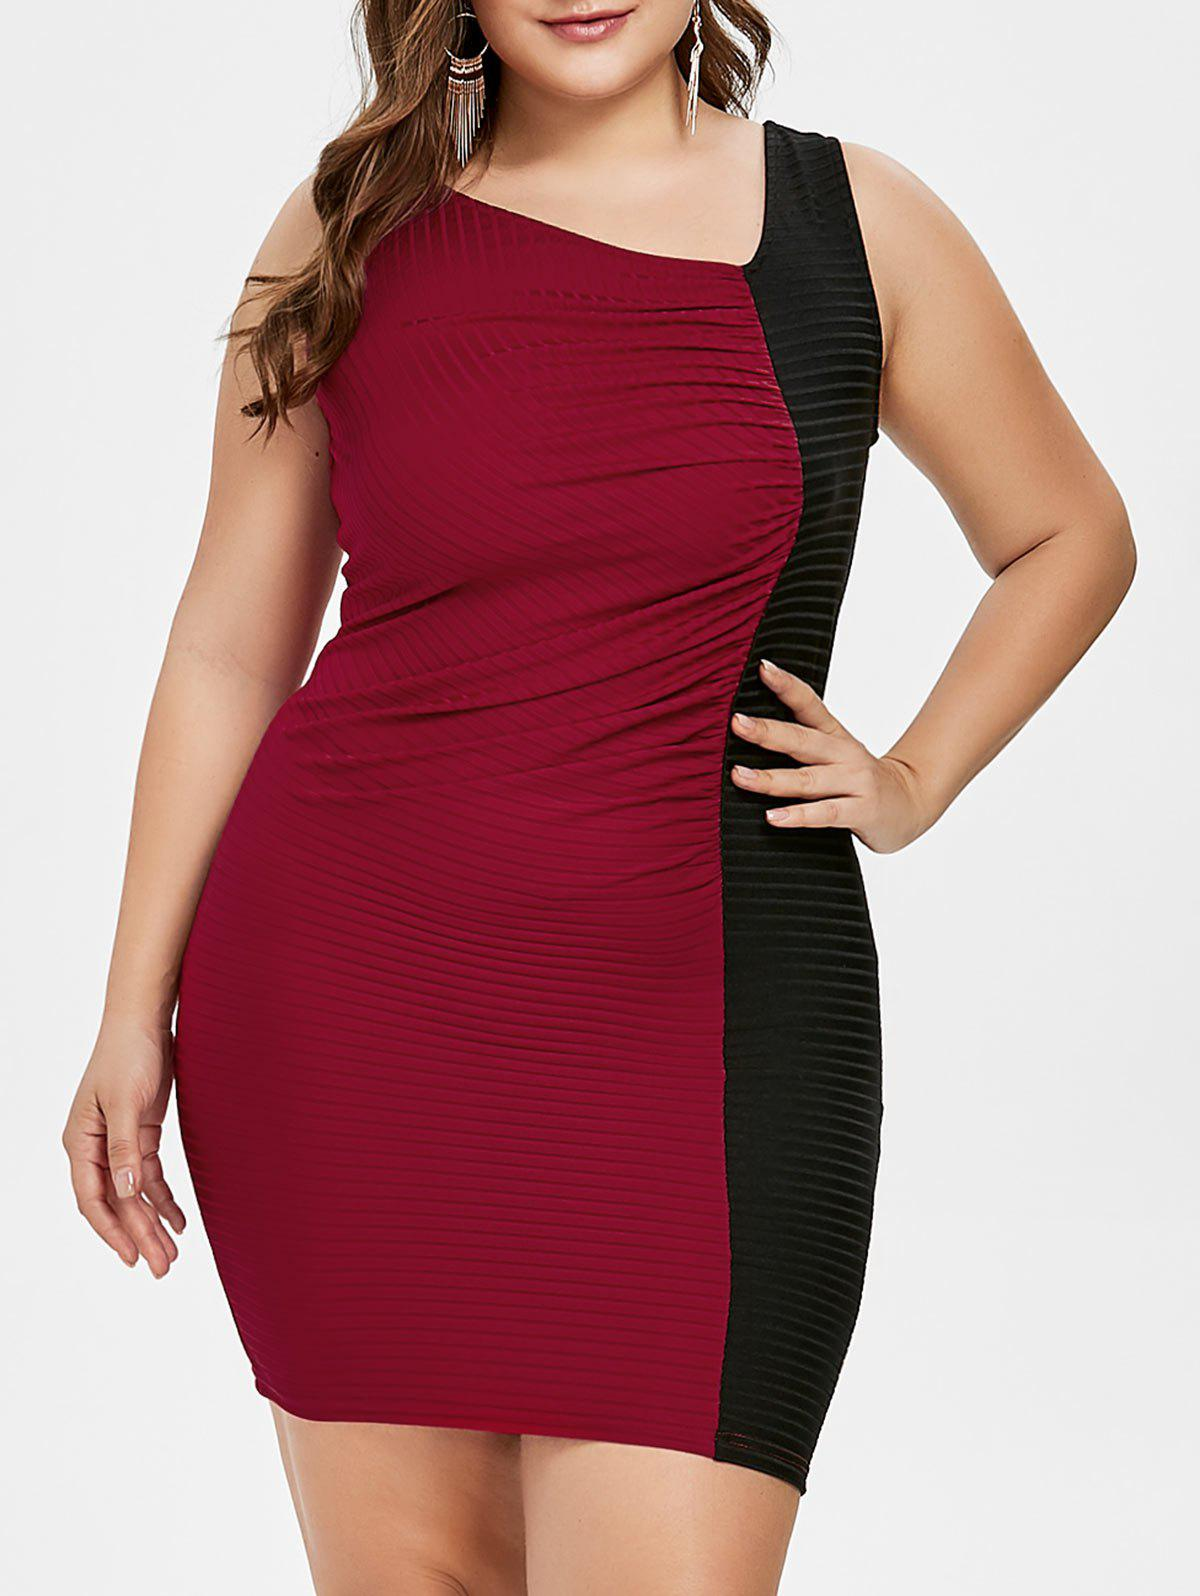 Plus Size Color Block Skew Collar Tight Dress - RED WINE 5X